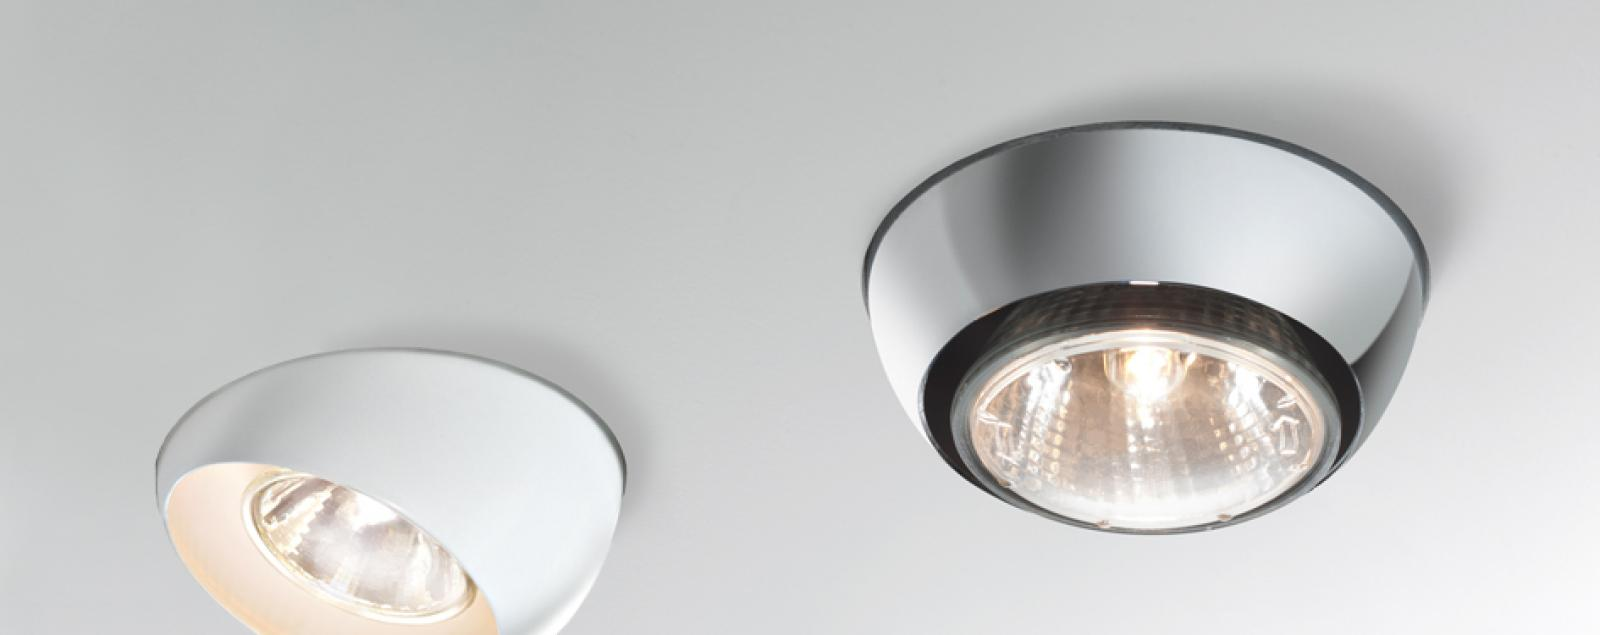 & Tools the new recessed spotlights | Fabbian